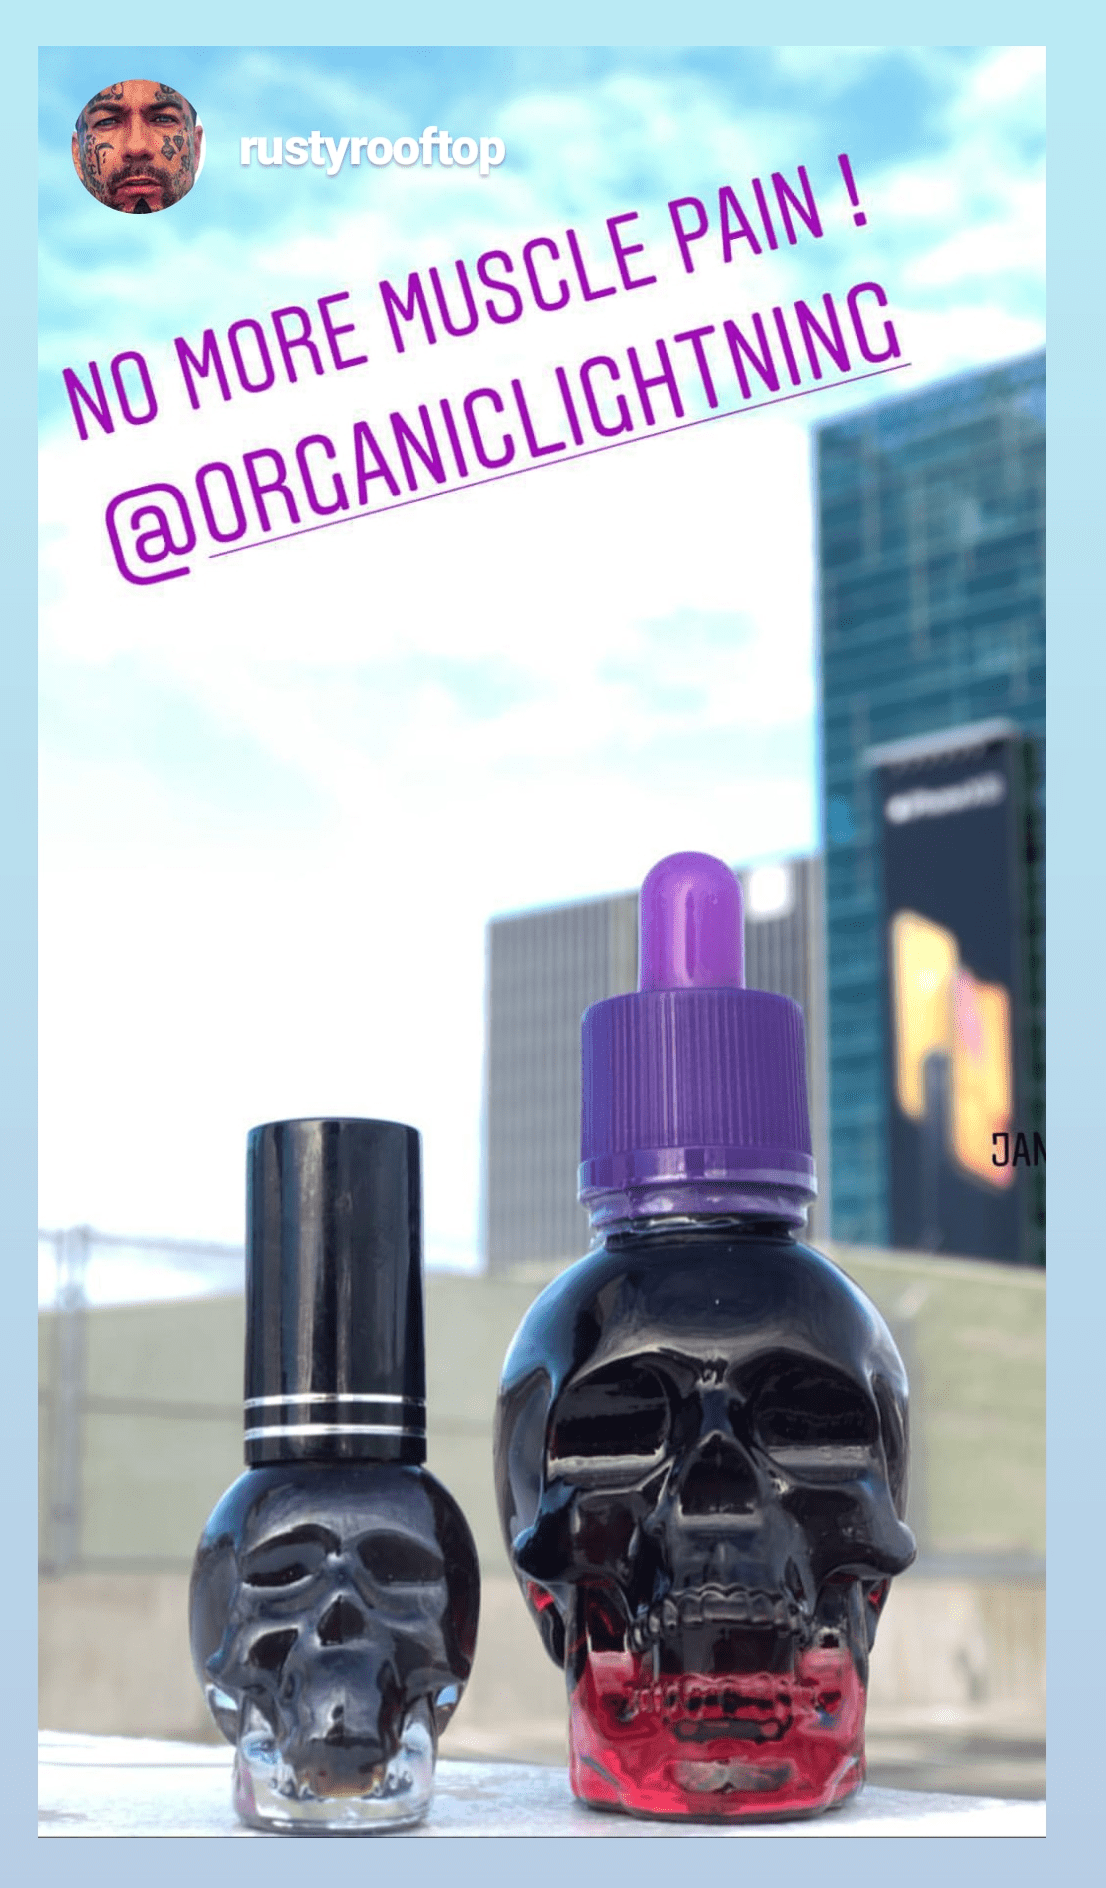 Organic Lightning CBD Oil and Vape by @rustyrooftop on Instagram